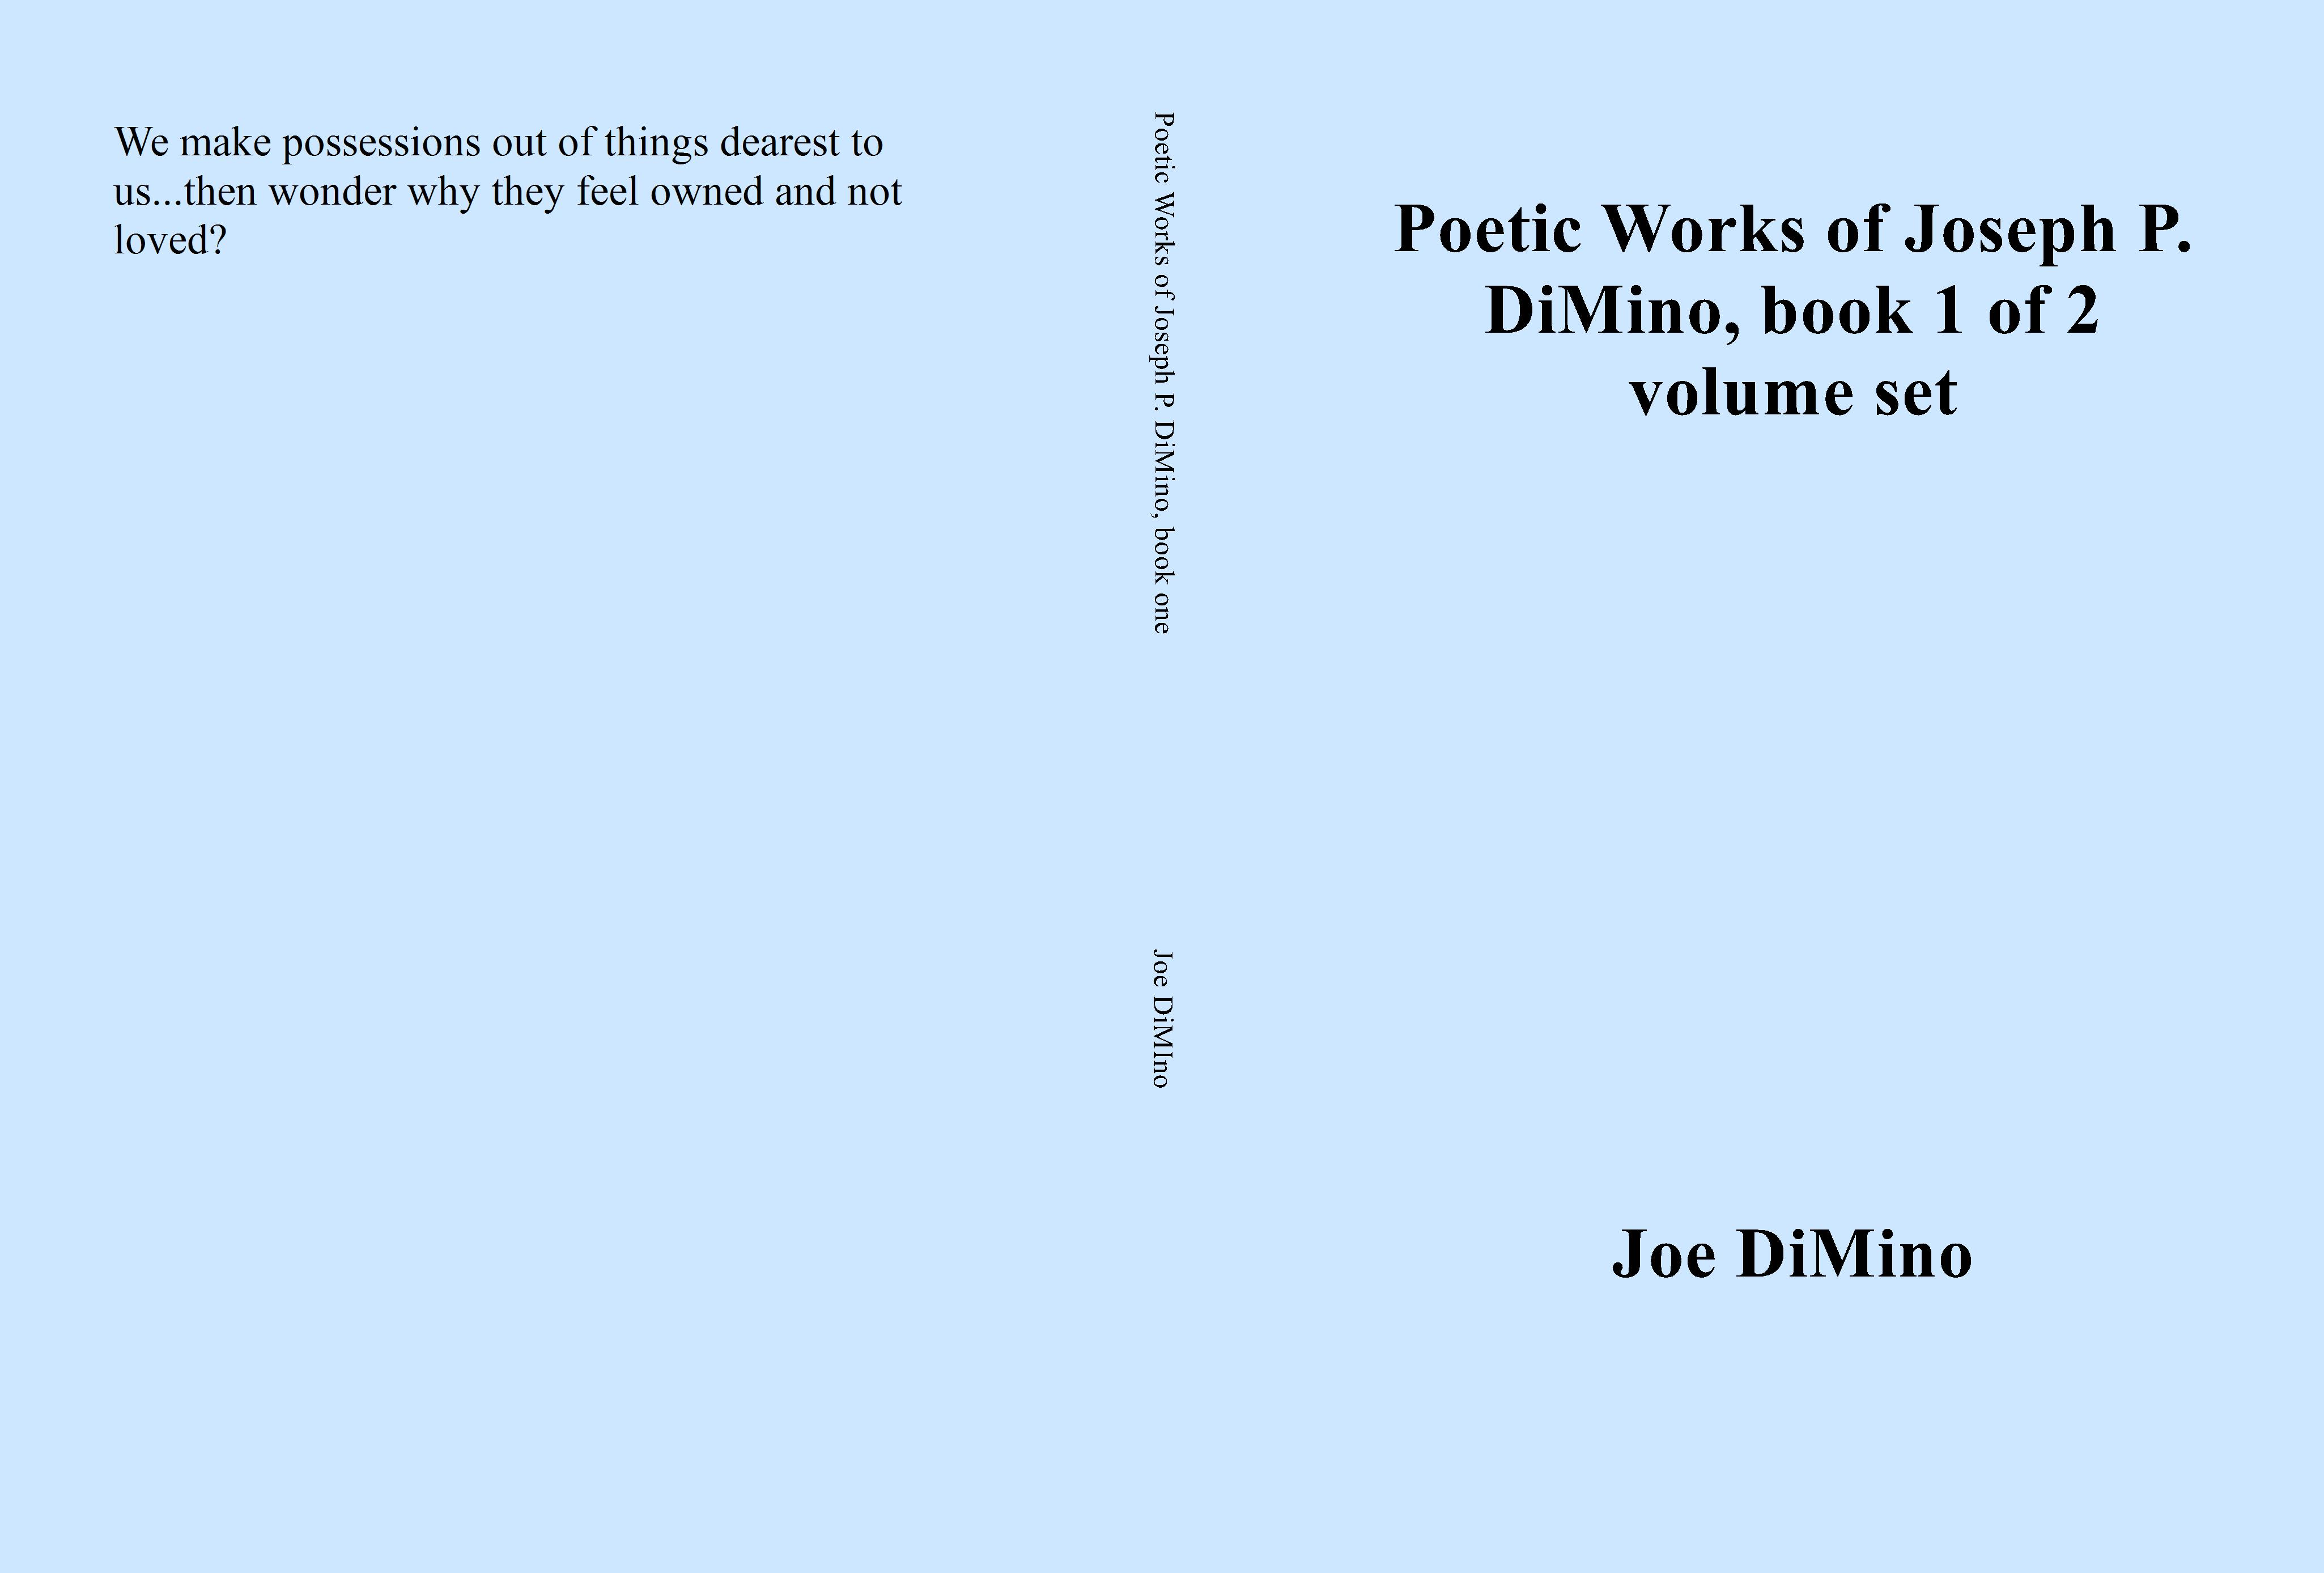 Poetic Works of Joseph P. DiMino, book 1 of 2 volume set cover image